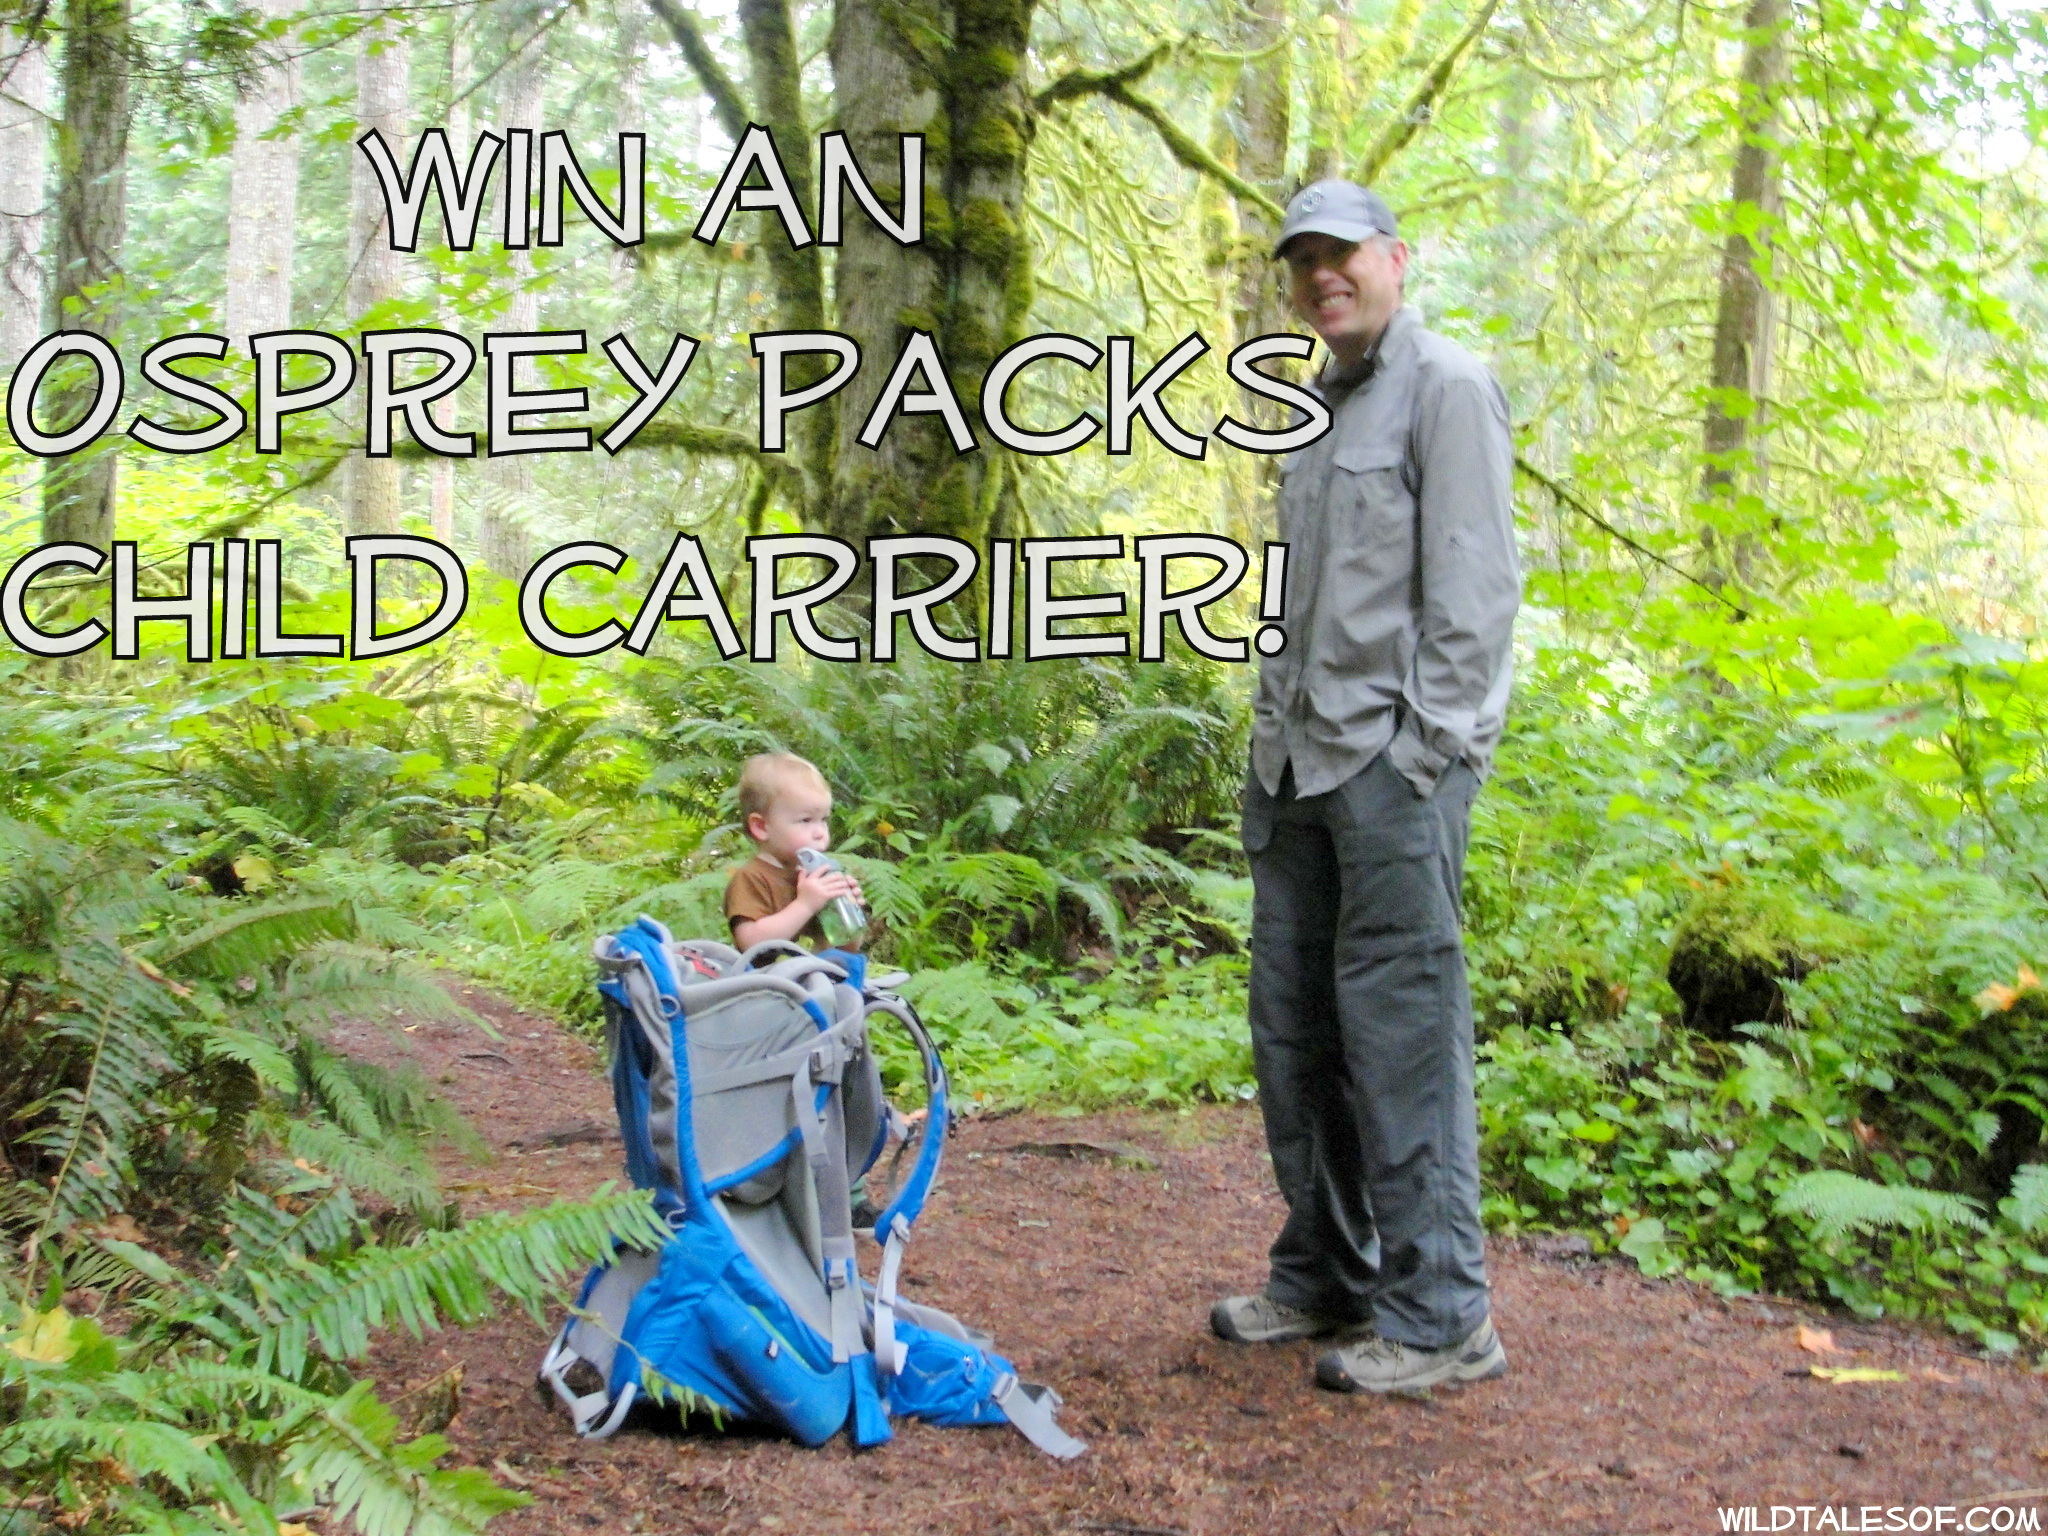 Passports with Purpose: Win an Osprey Packs Child Carrier! | WildTalesof.com